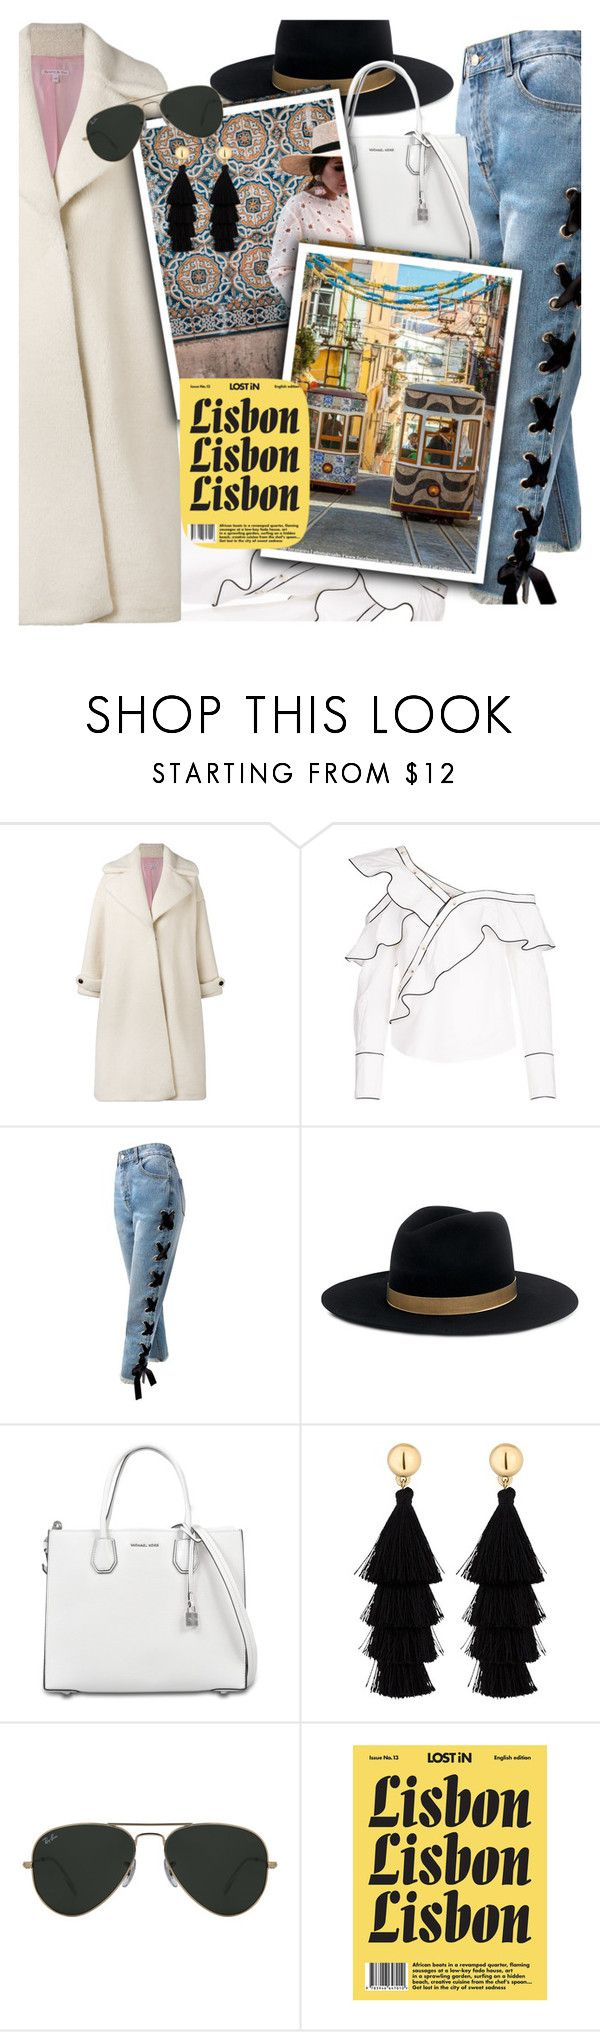 """travel to Lisbon"" by katymill ❤ liked on Polyvore featuring Olympia Le-Tan, self-portrait, Sans Souci, Janessa Leone, MICHAEL Michael Kors, Red Herring, Ray-Ban, travel, trend and lisbon"